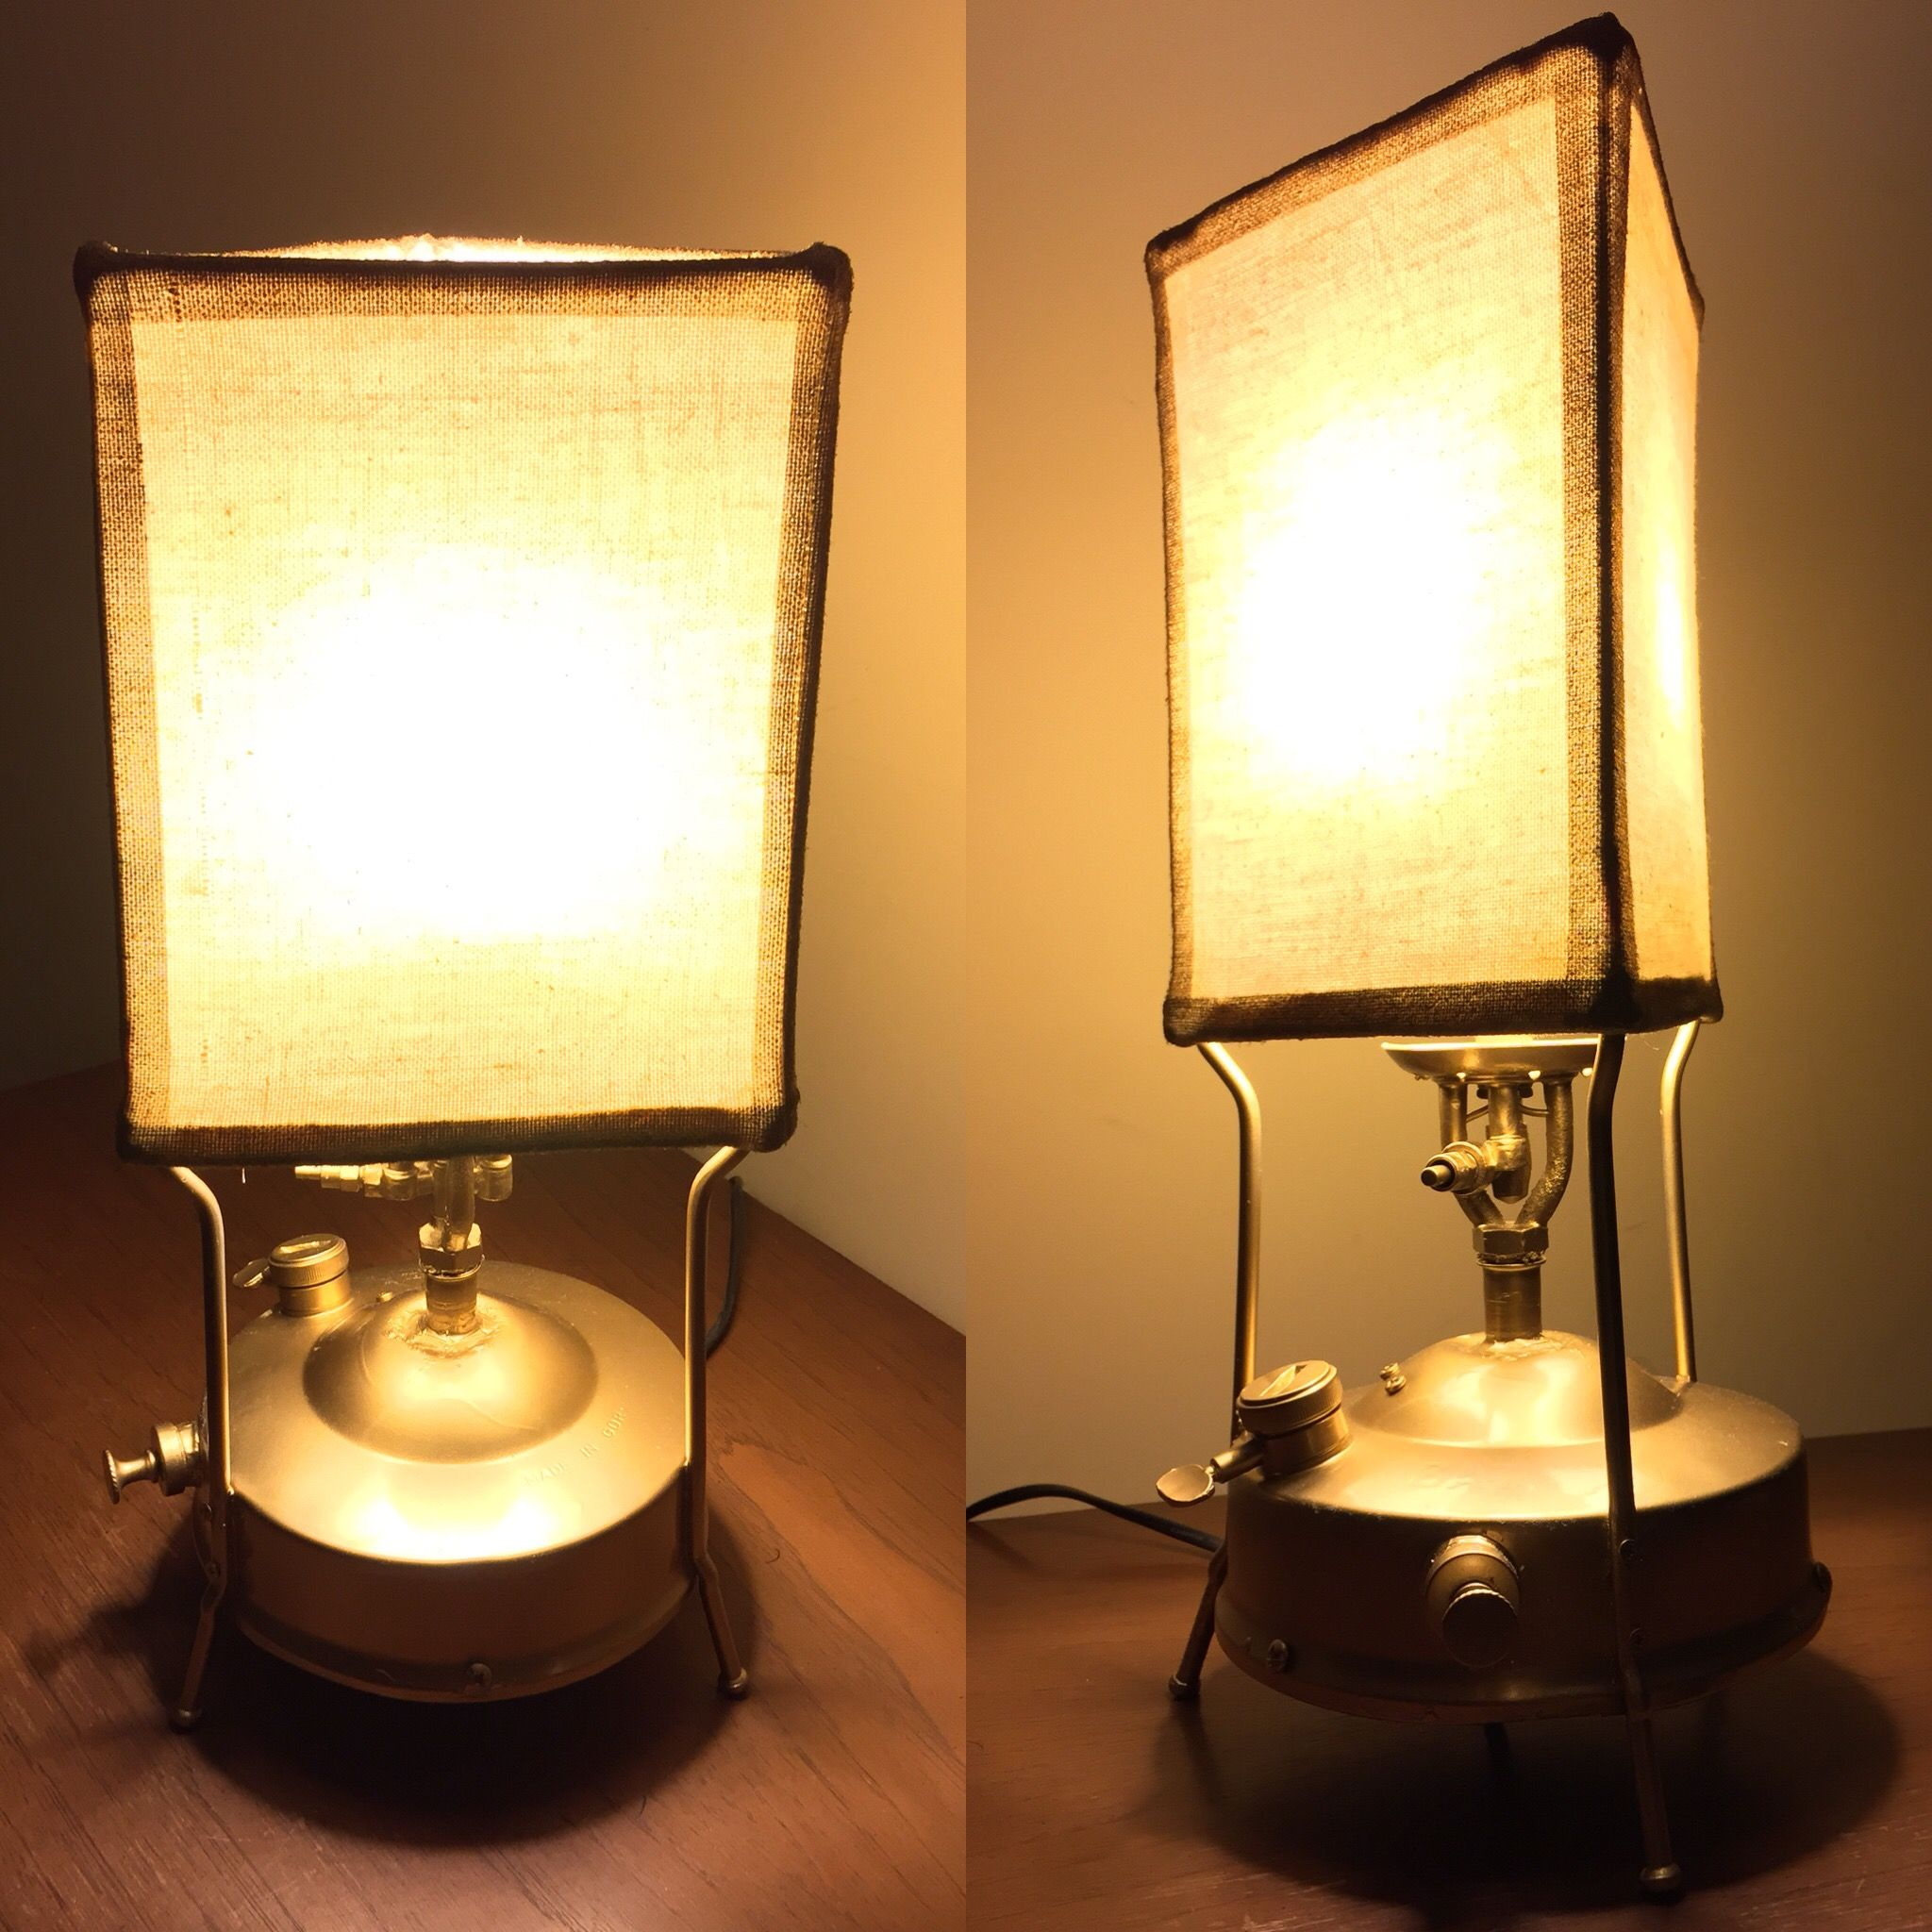 Table Lamp Made With An Old Gas Stove Lamp Table Lamp Gas Stove